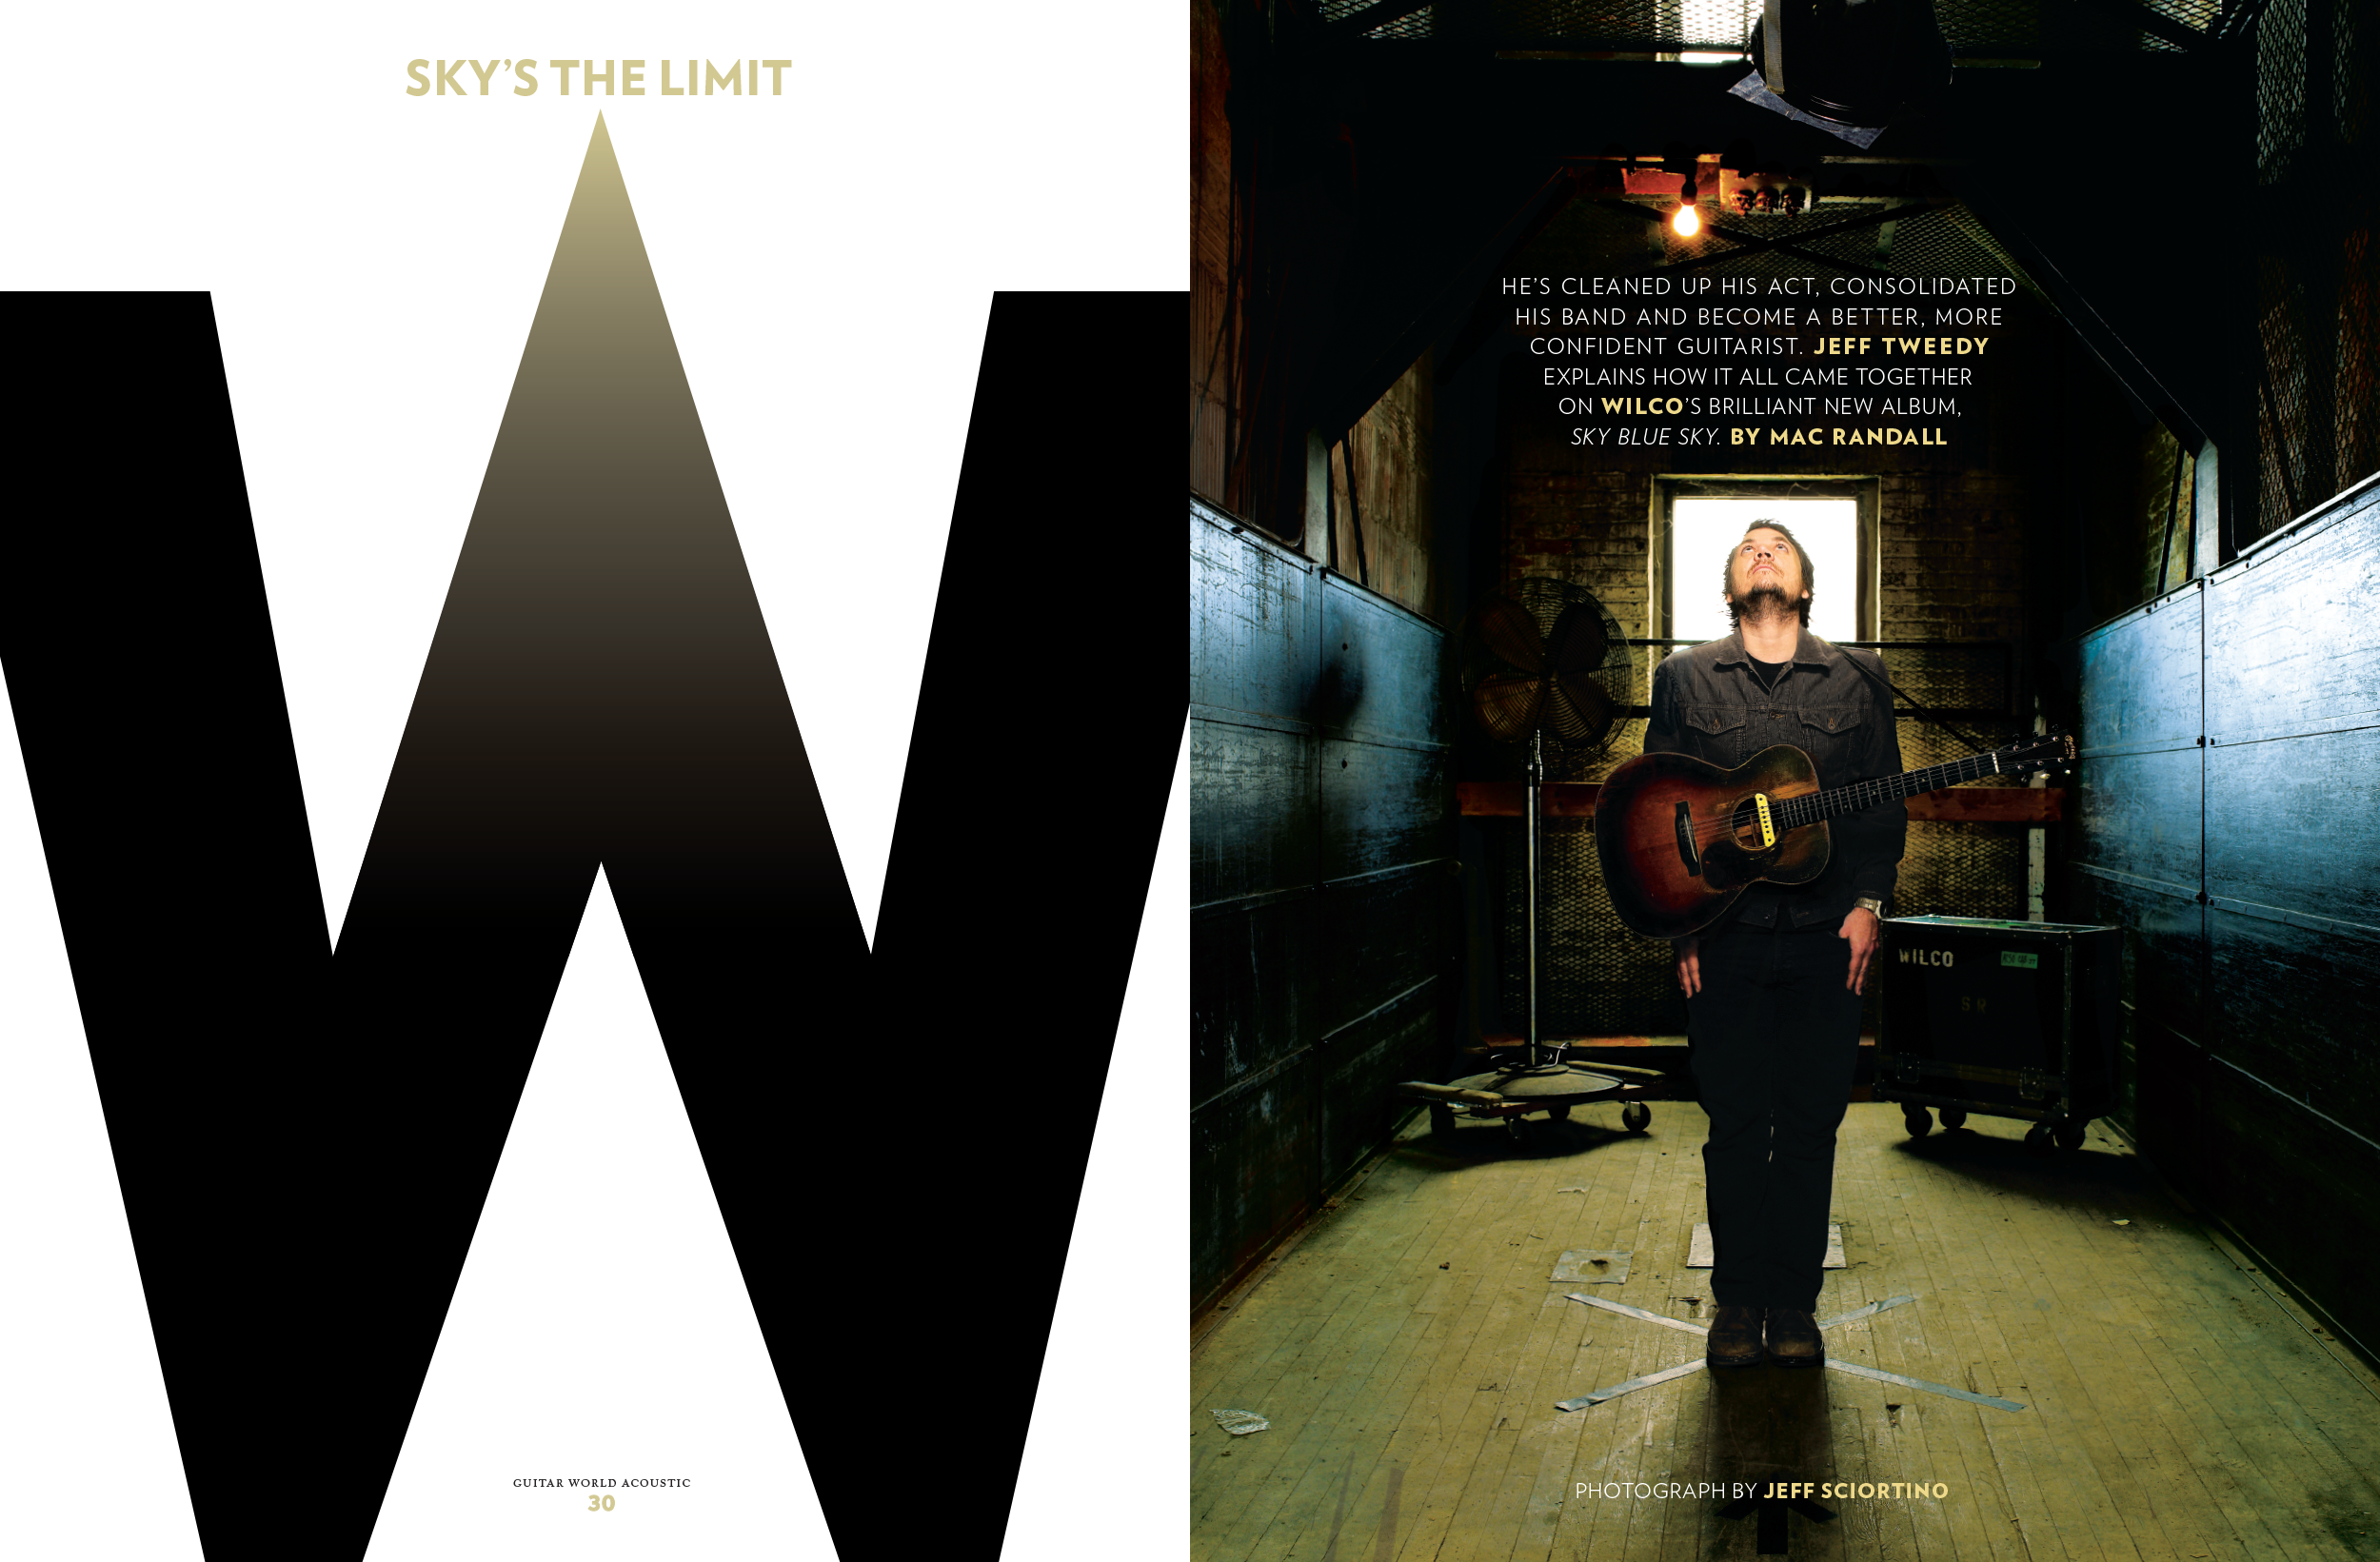 01_03_01 Wilco_LARGE.png